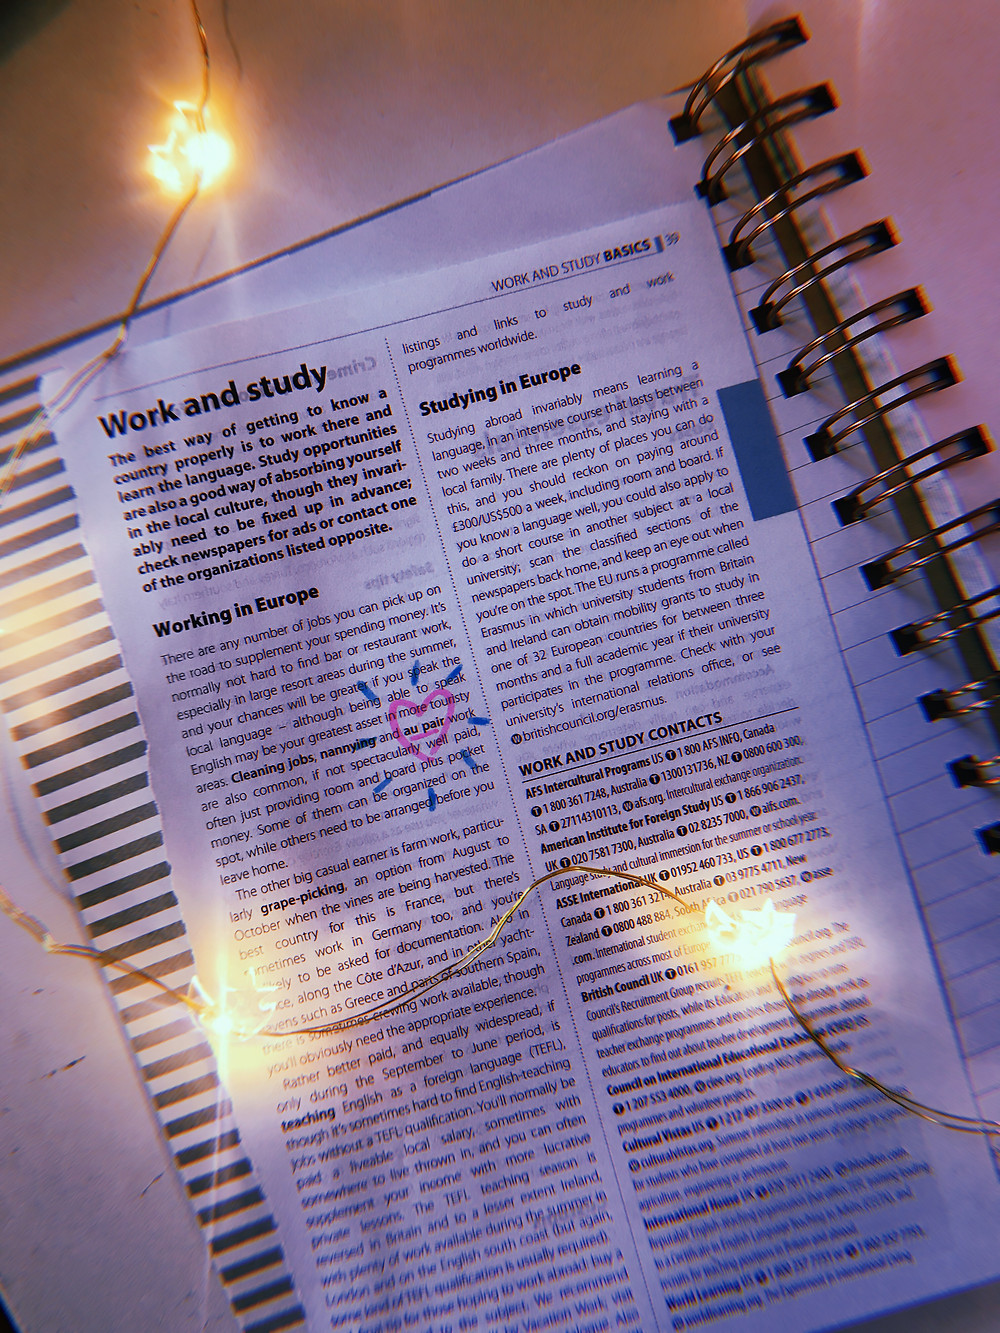 Pretty feminine tea lights scattered across a European work and study travel book with au pair